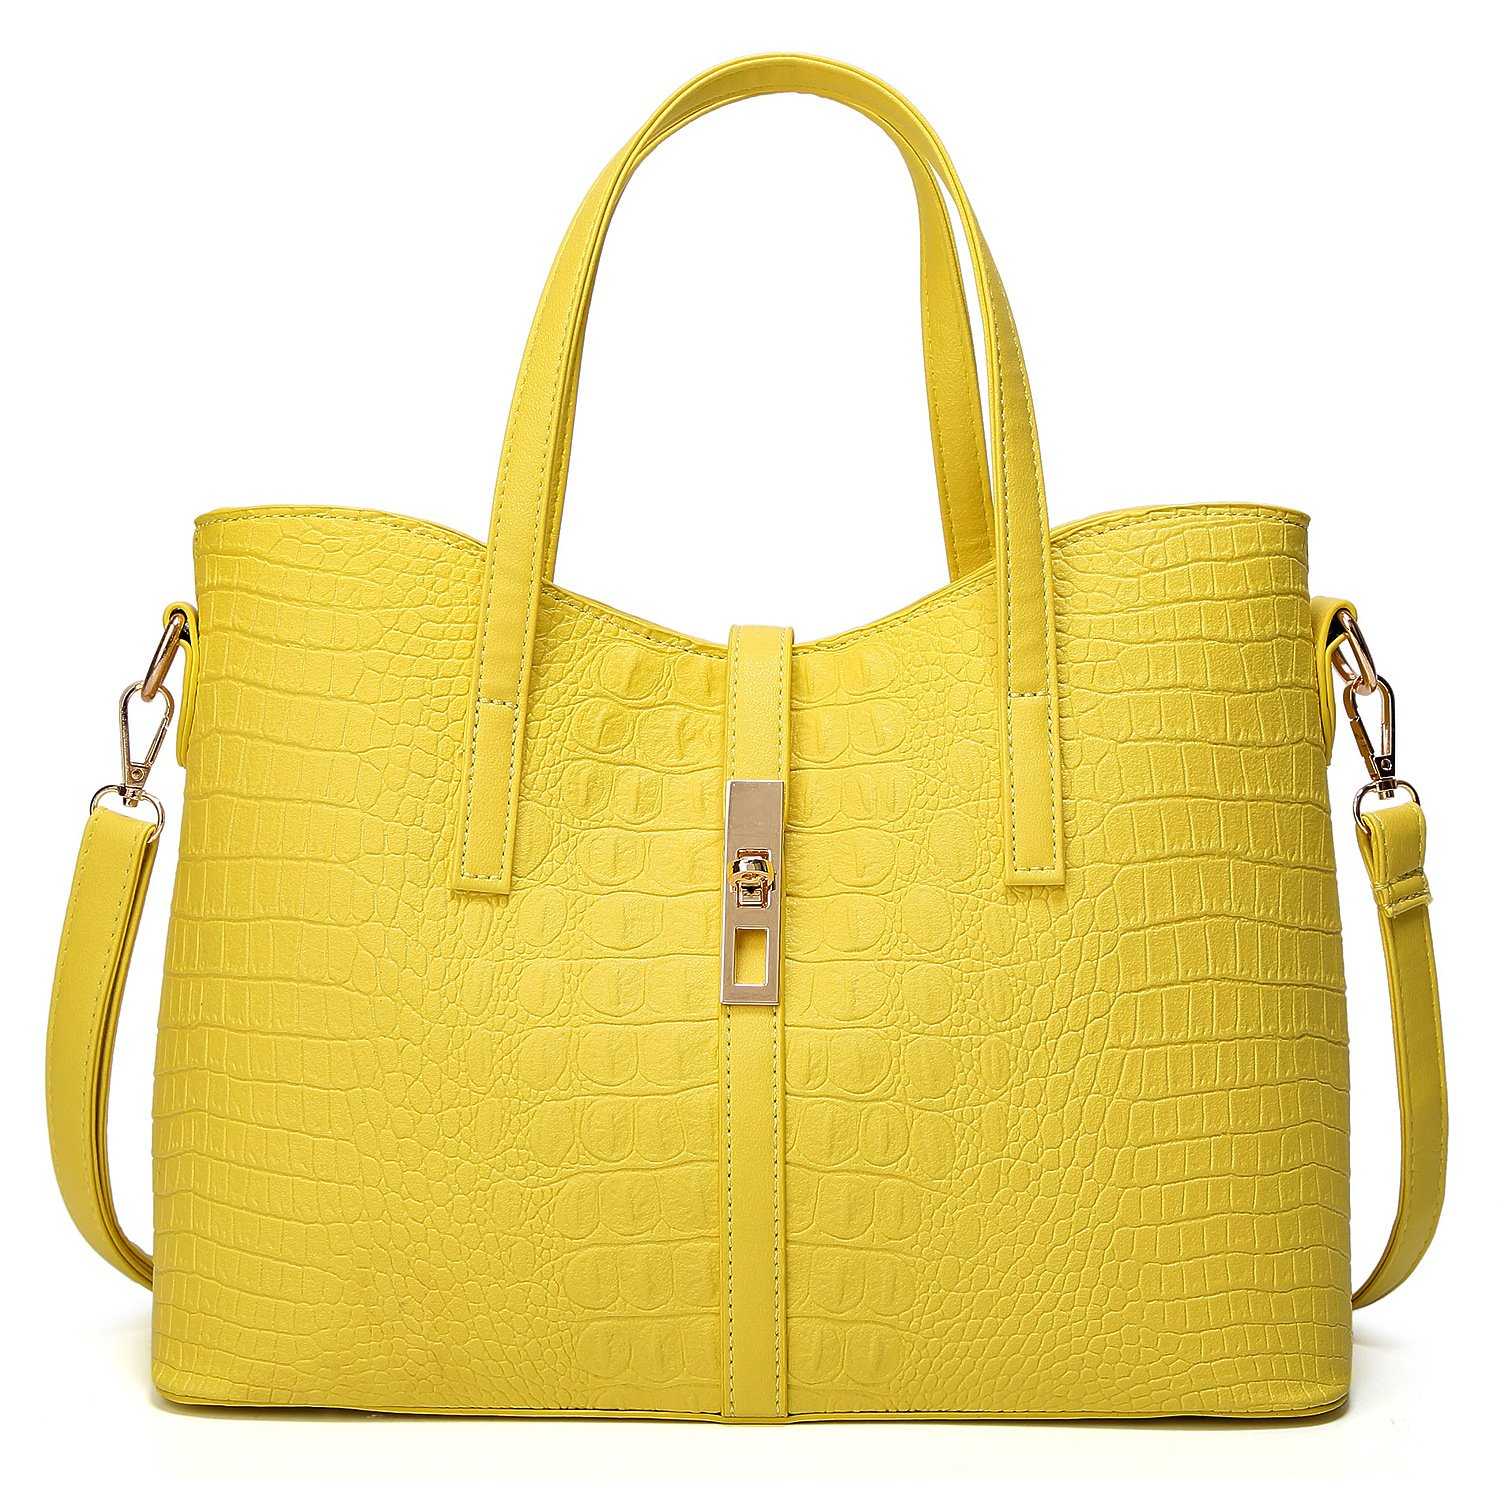 YNIQUE Satchel Purses and Handbags for Women Shoulder Tote Bags Wallets by YNIQUE (Image #2)